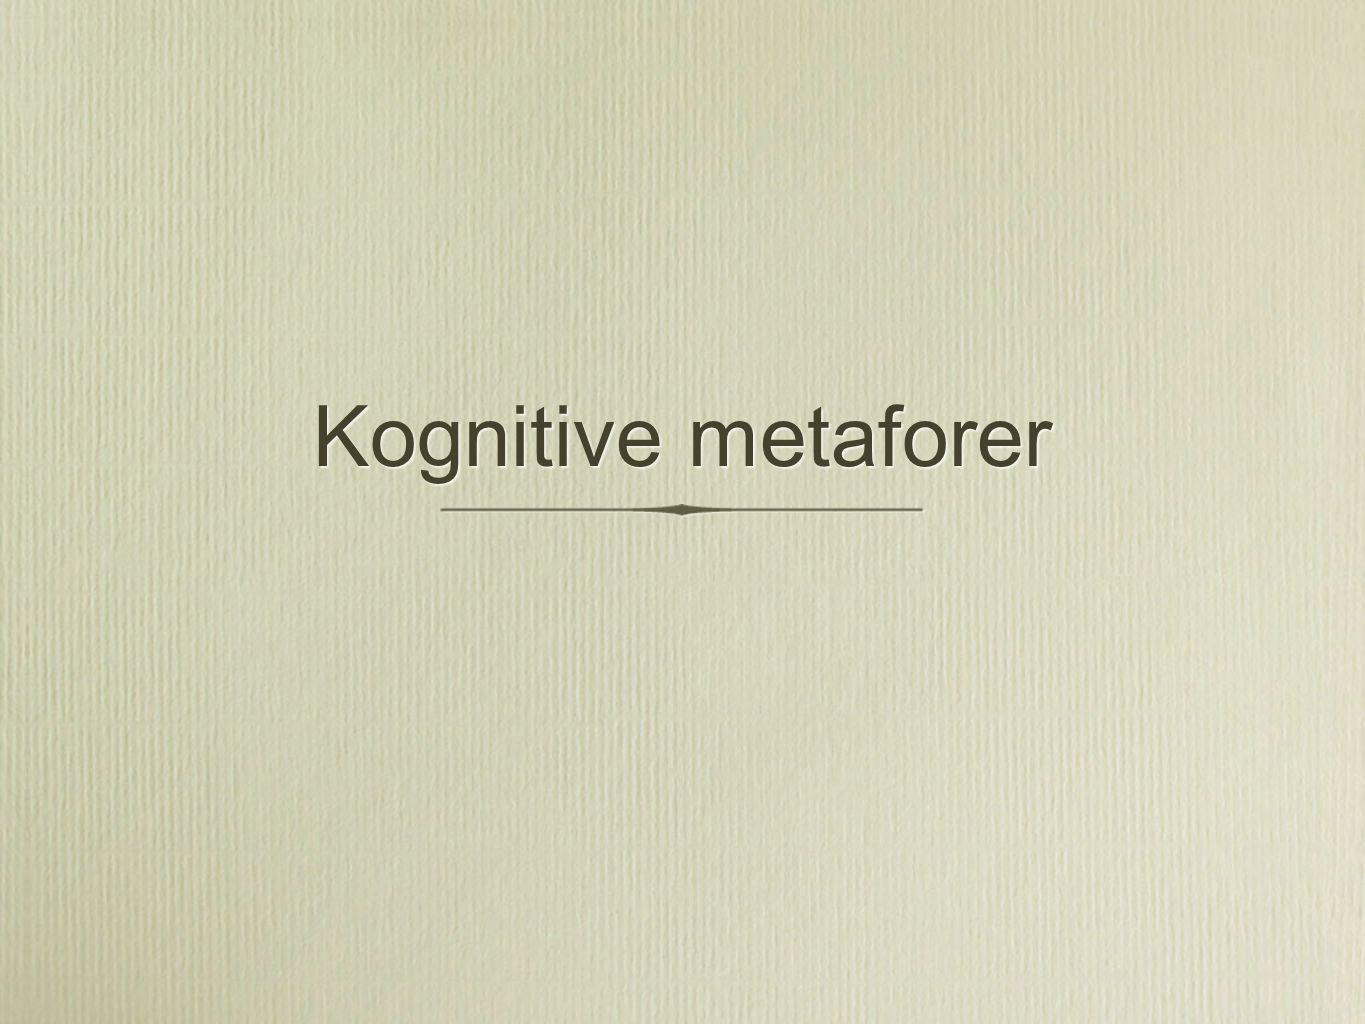 Kognitive metaforer